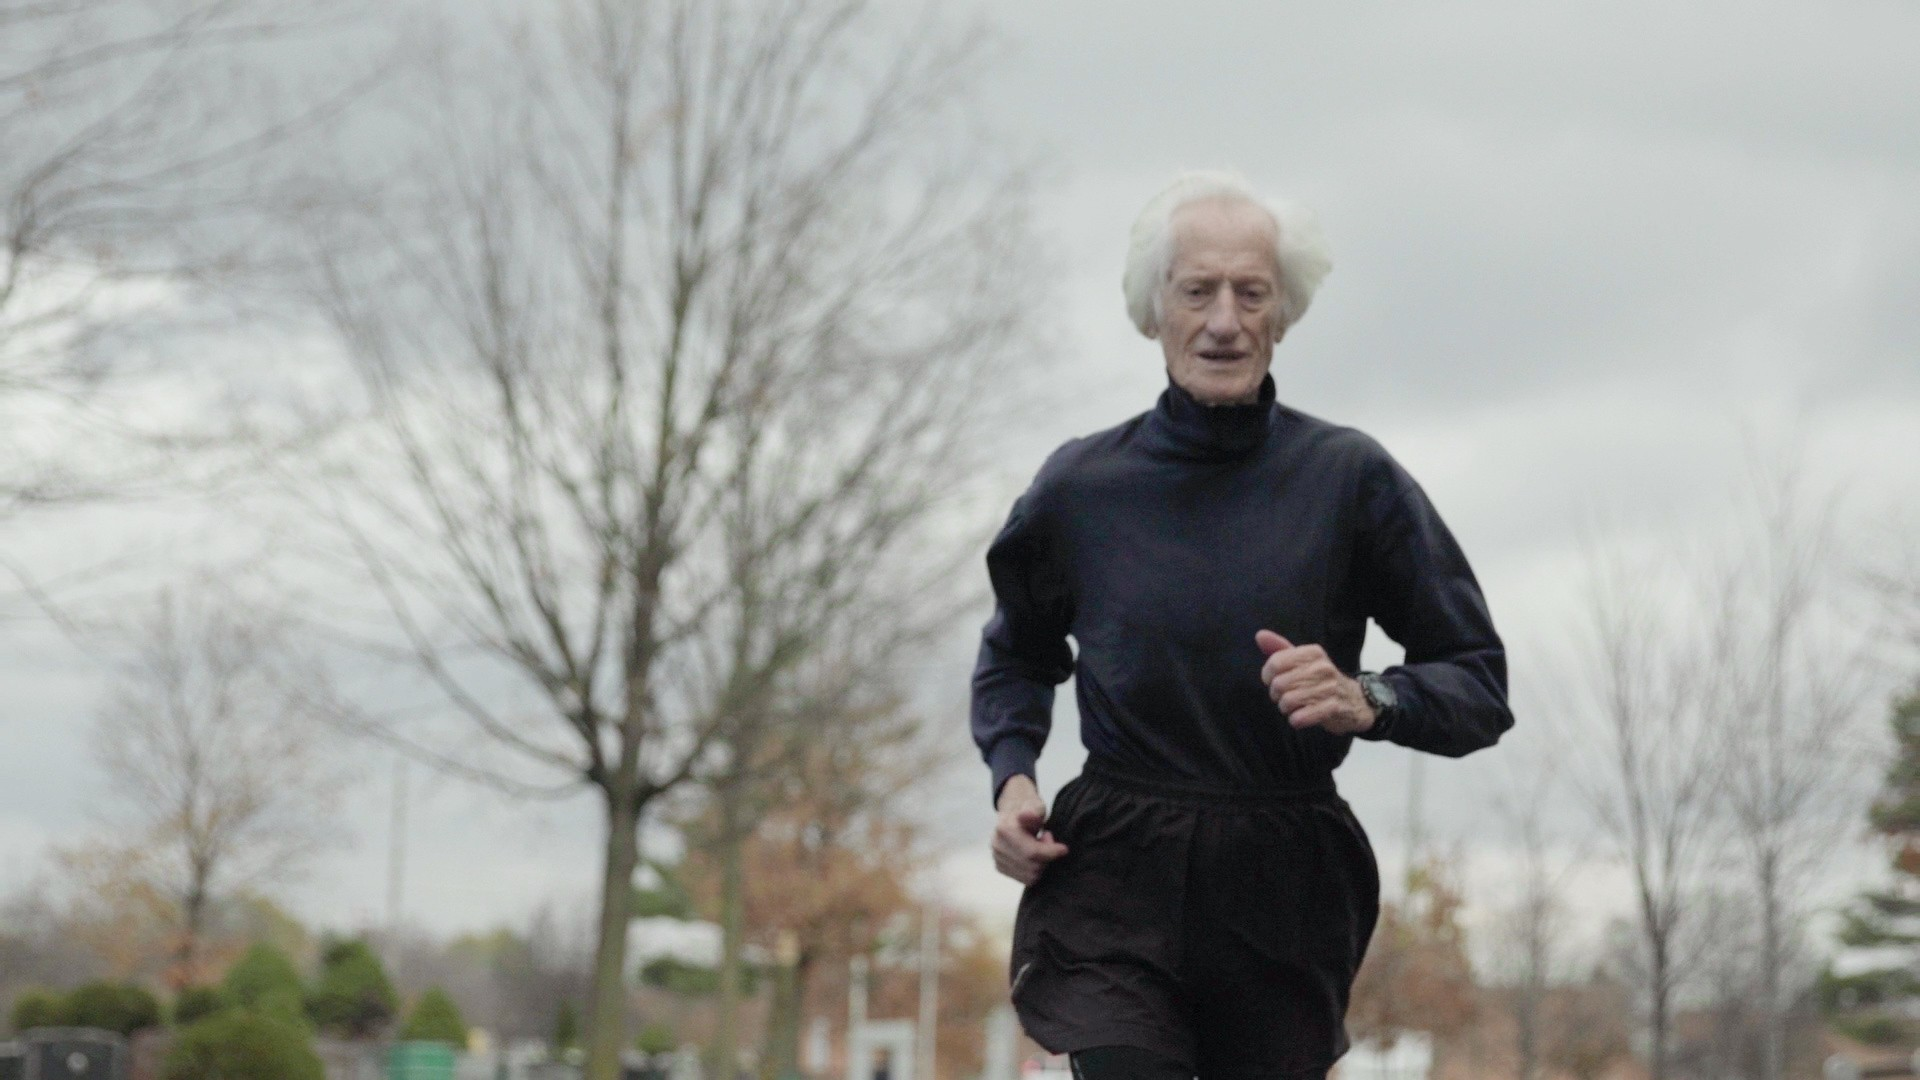 Meet the 85 Year-Old Marathon Runner Beating Competition Half His Age